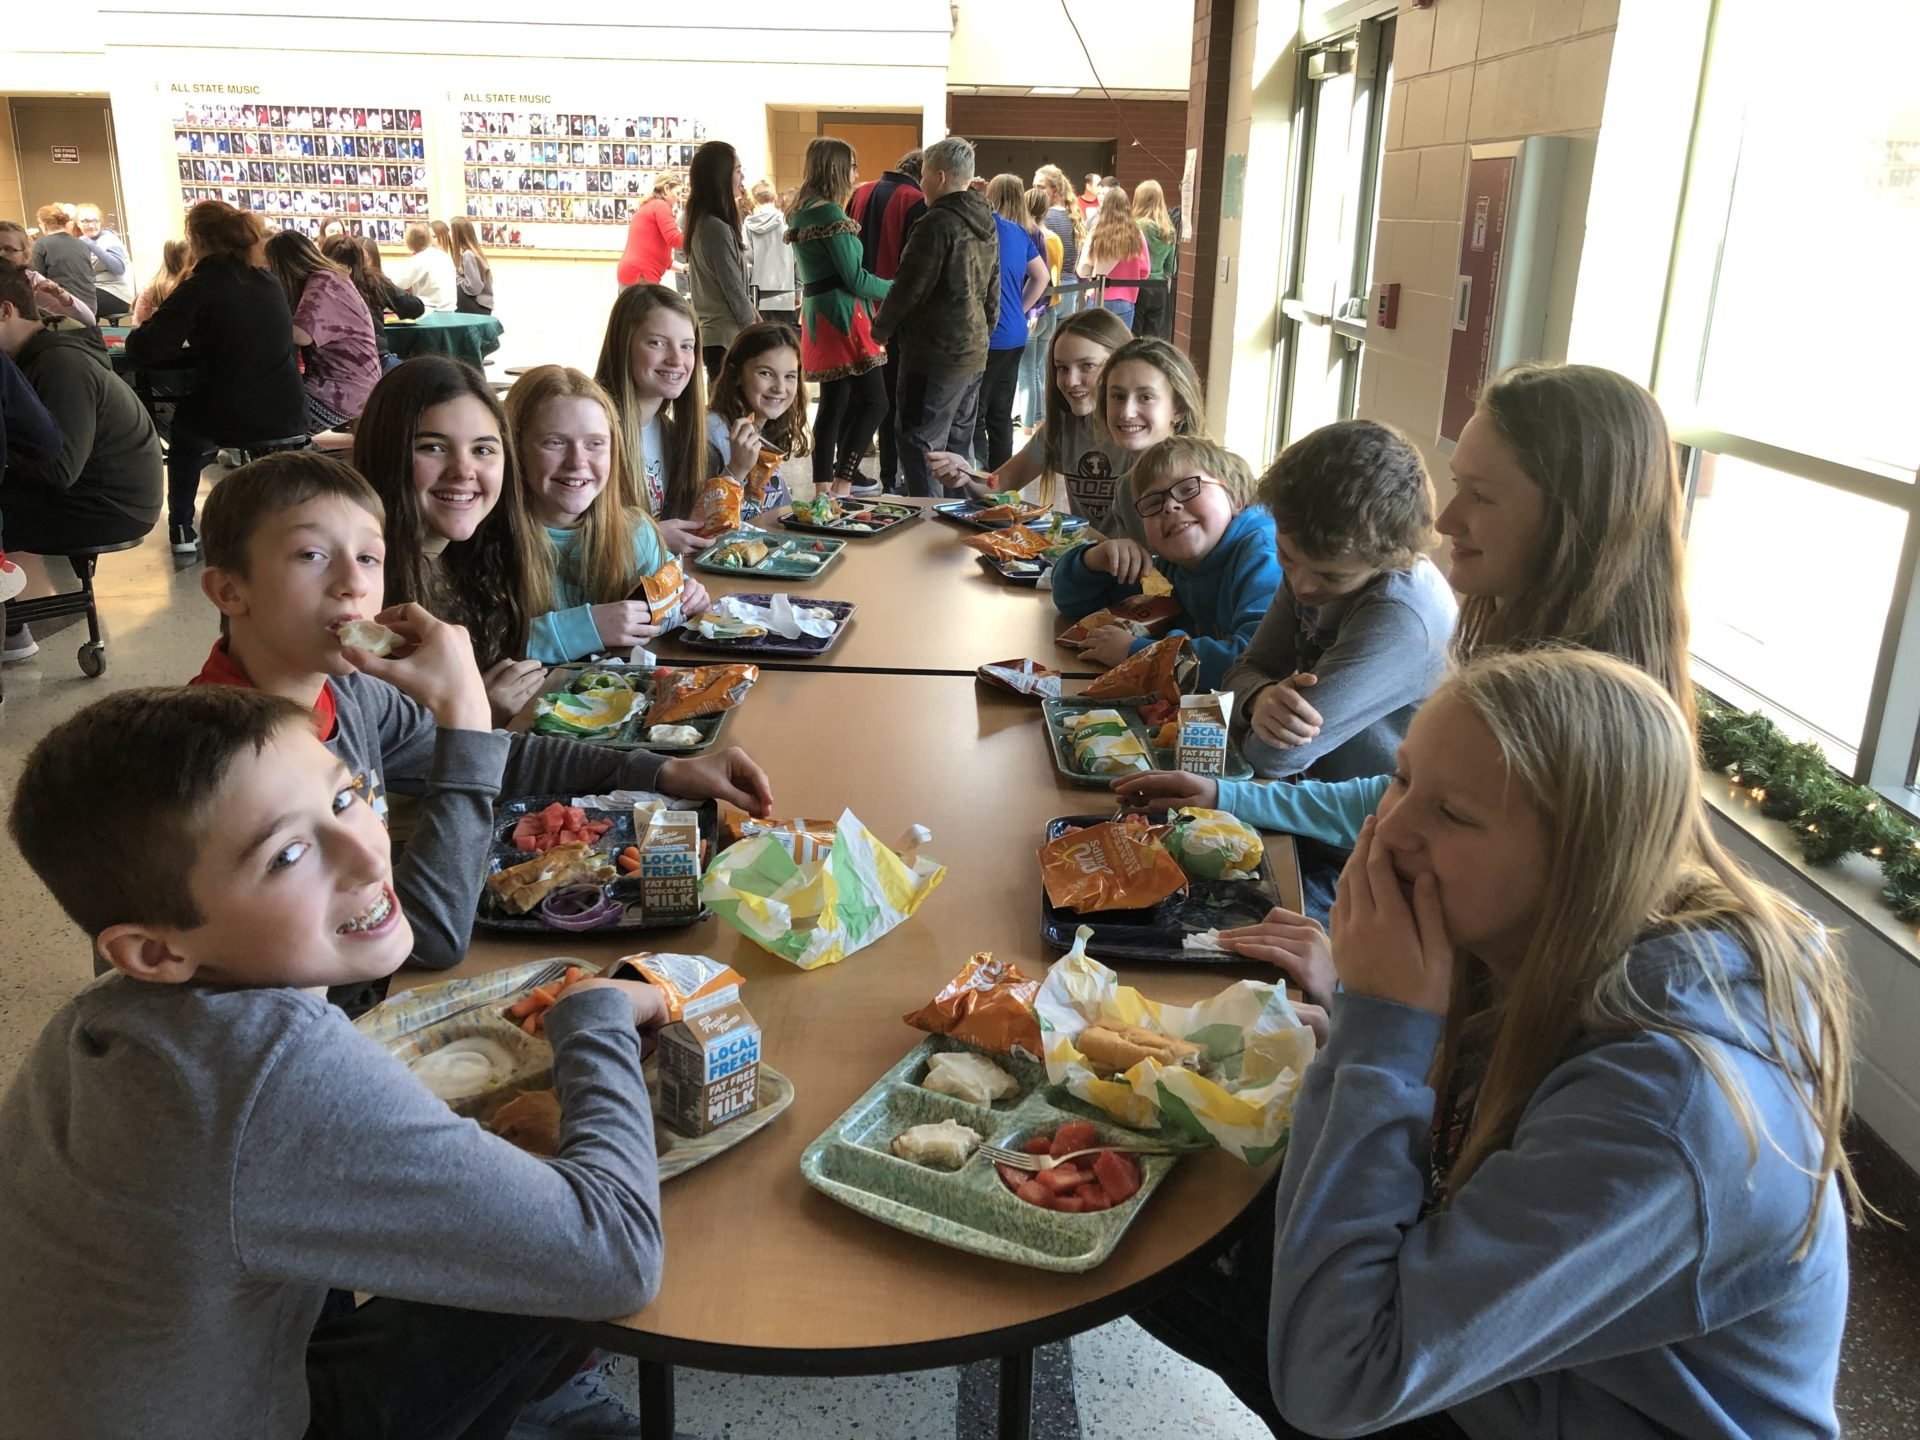 students eating lunch together